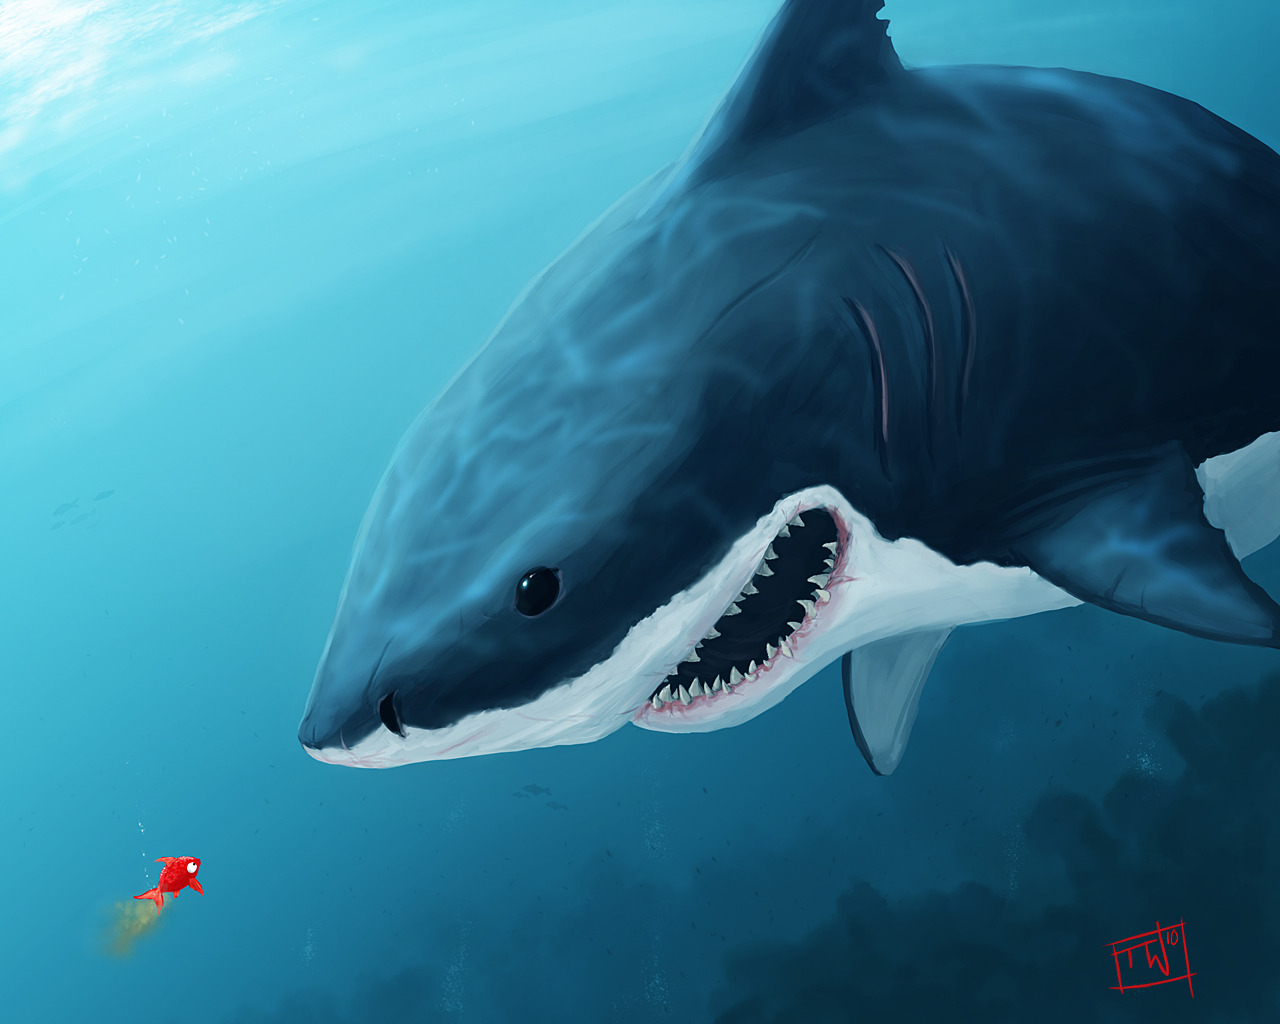 The Bully Picture (2d, creatures, shark, fish)